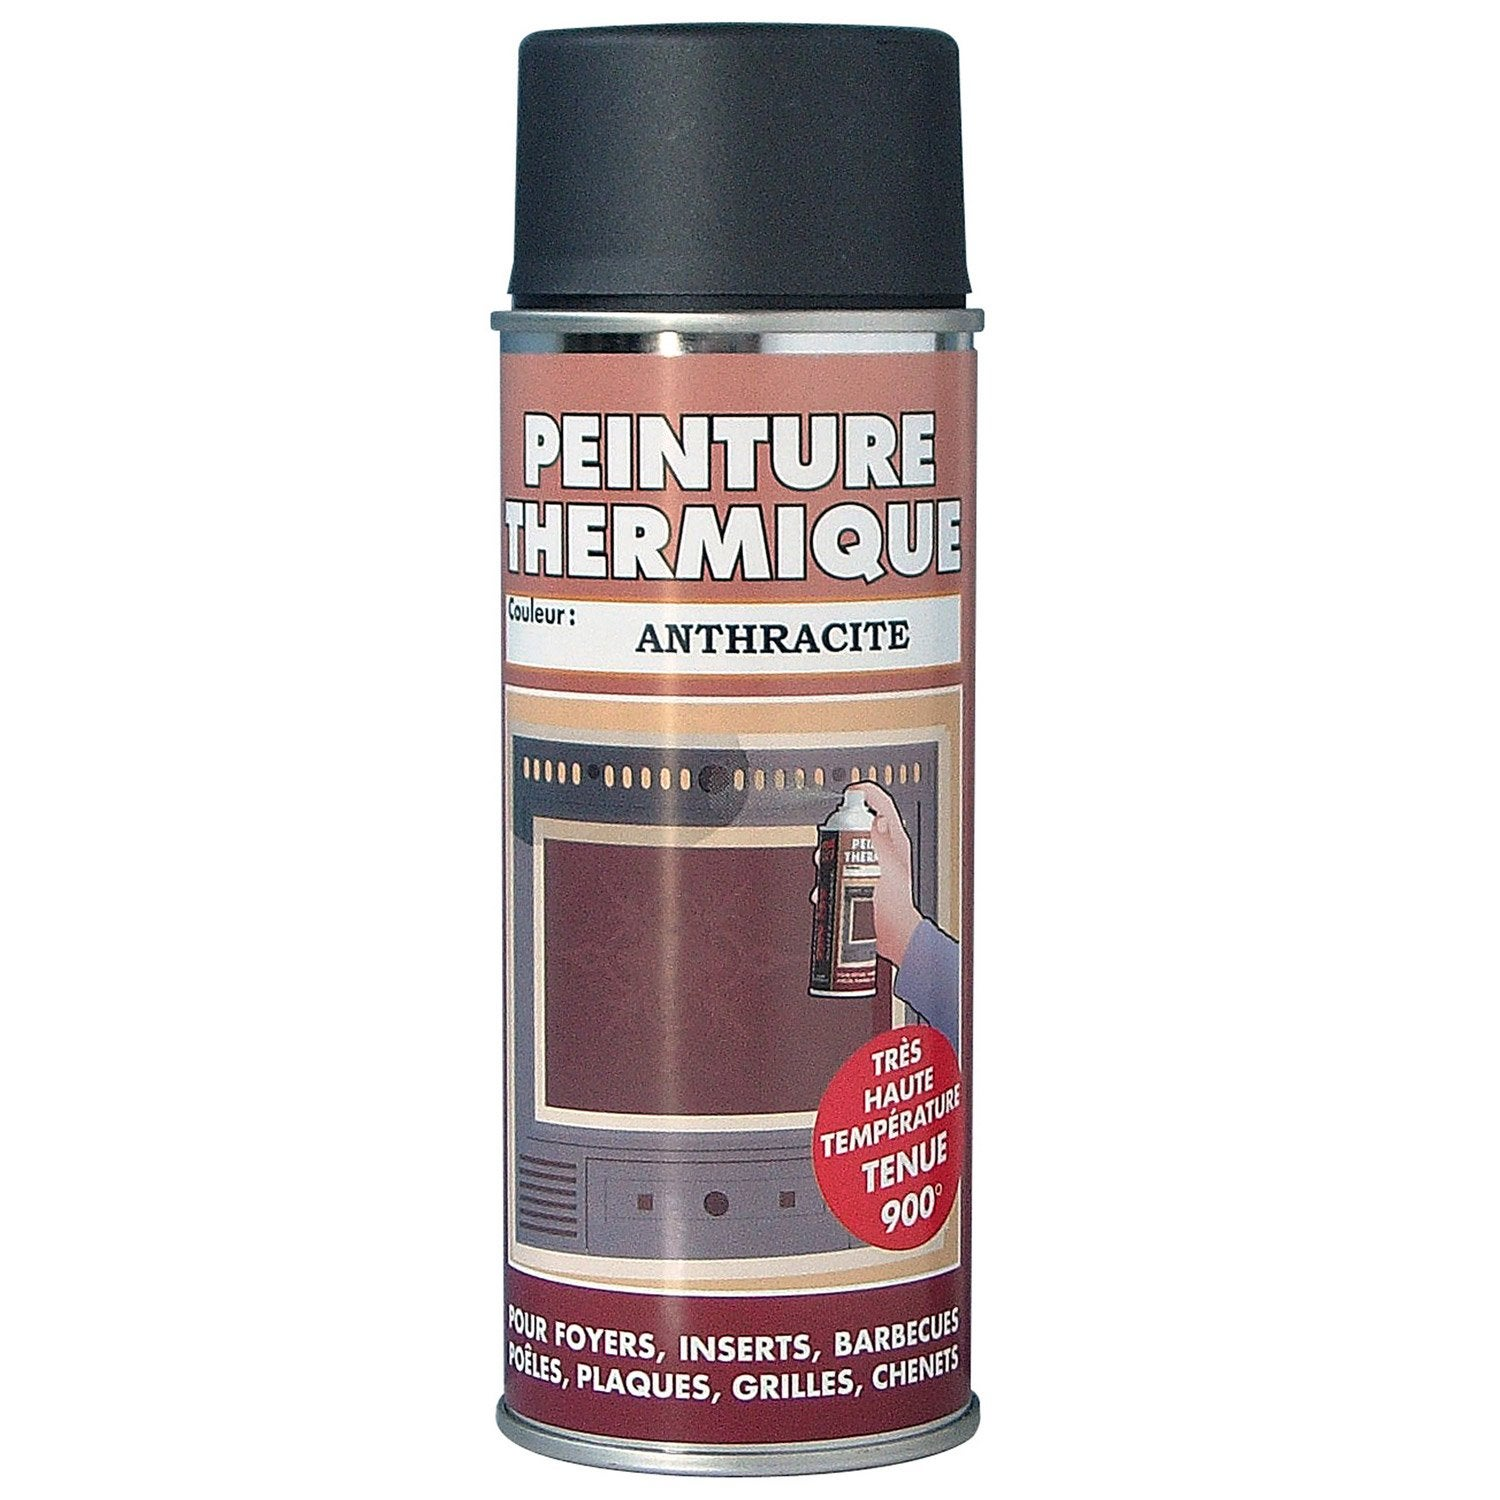 peinture thermique anthracite pyrofeu a rosol de 400 ml leroy merlin. Black Bedroom Furniture Sets. Home Design Ideas